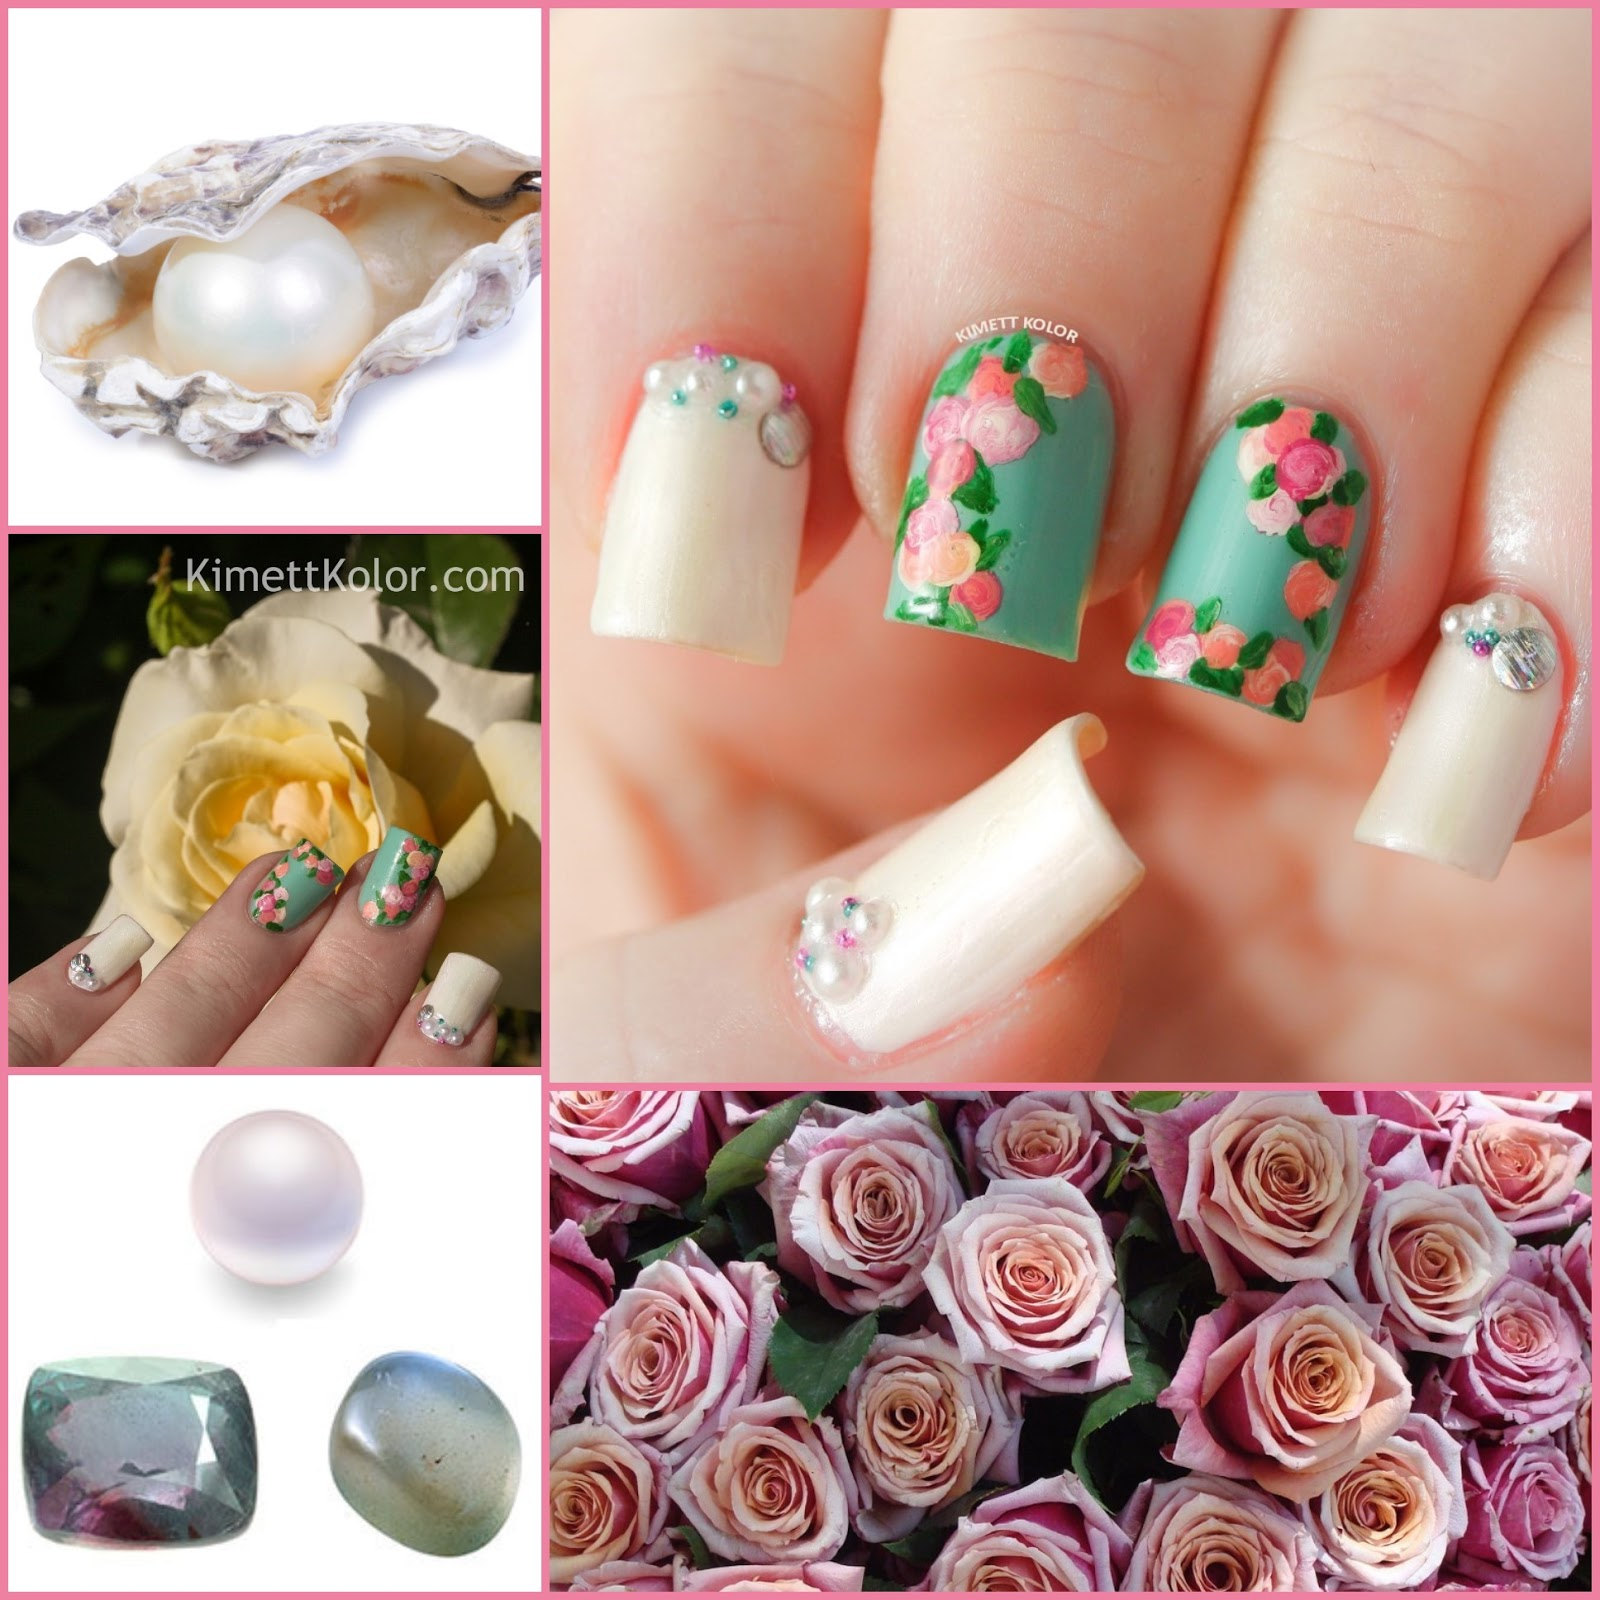 June Birthstones and Roses Nail Art by KimettKolor